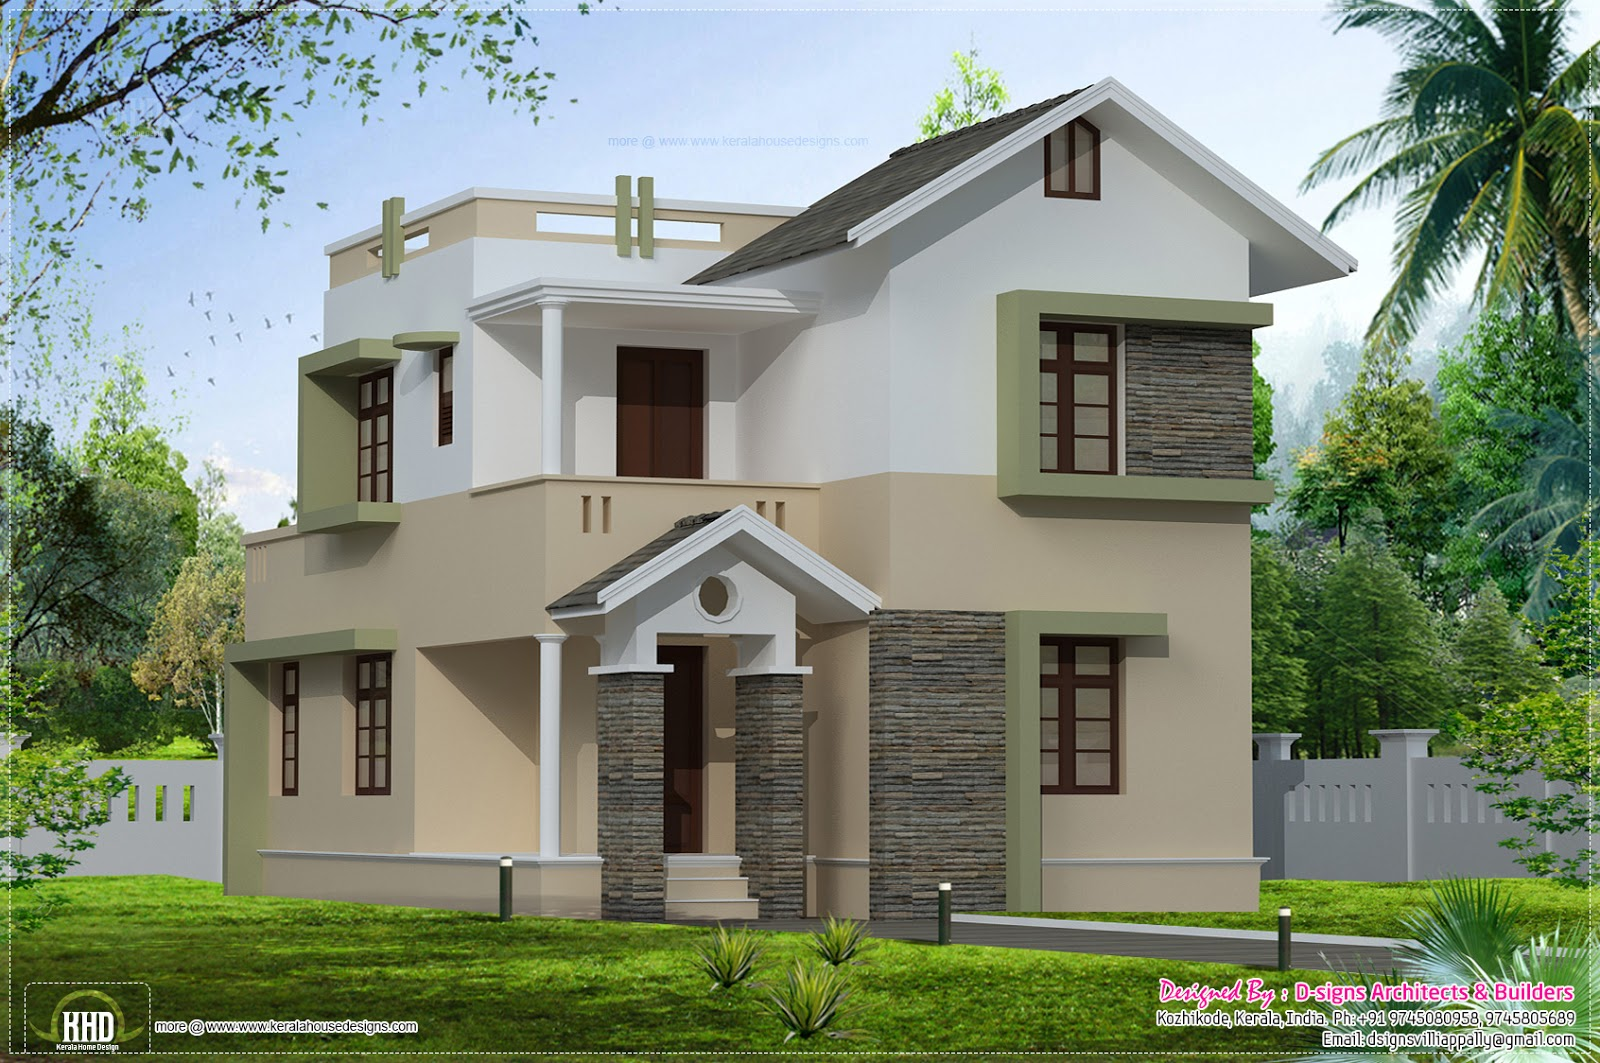 Front elevation of small houses home design and decor for Small home design in kerala